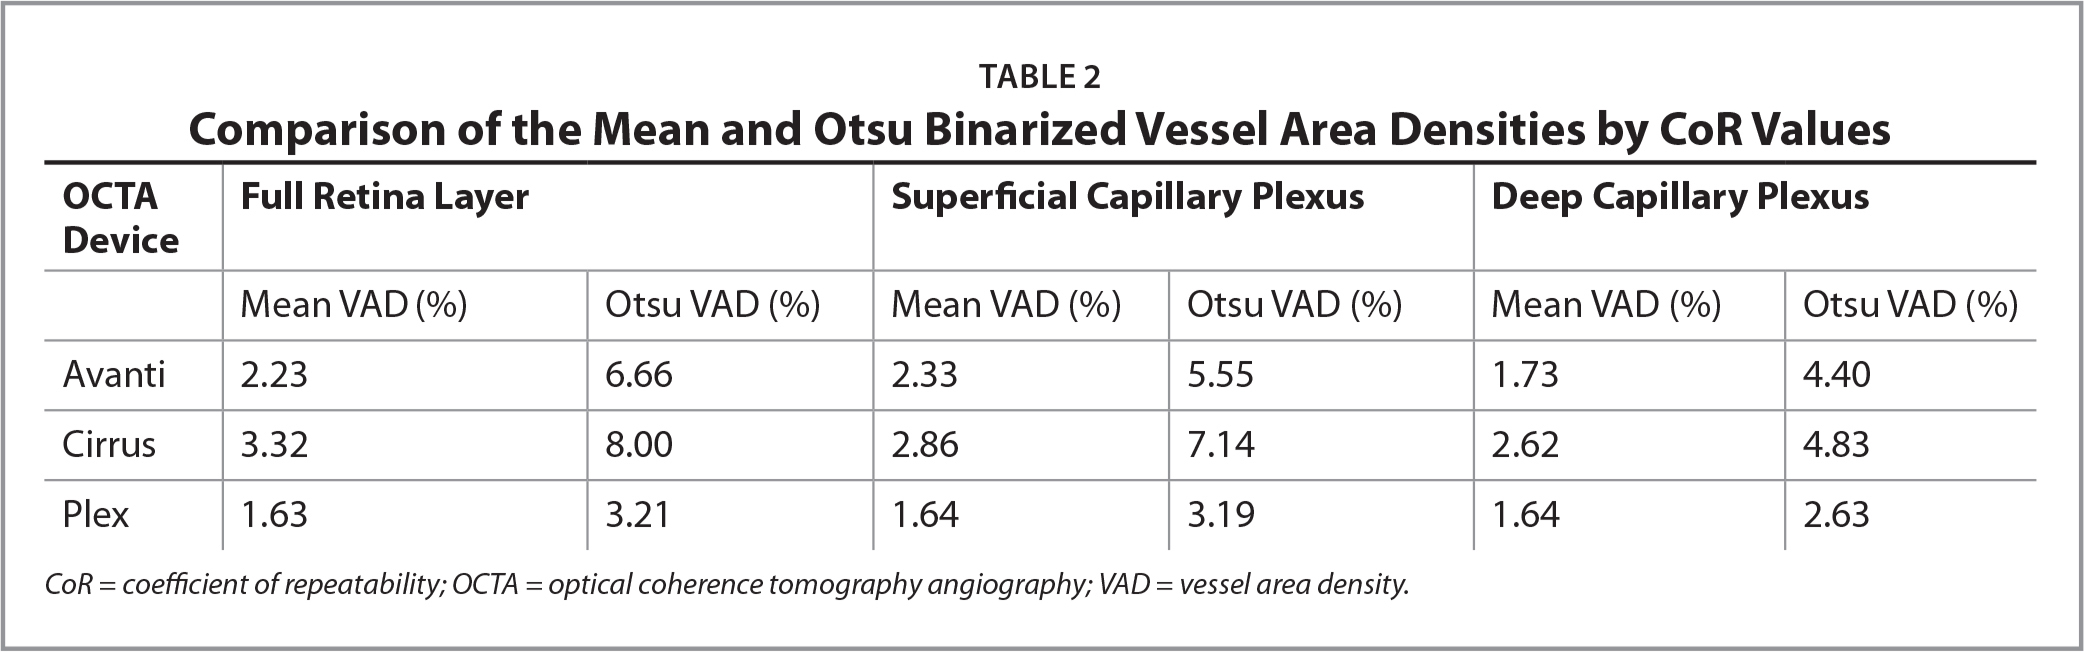 Comparison of the Mean and Otsu Binarized Vessel Area Densities by CoR Values